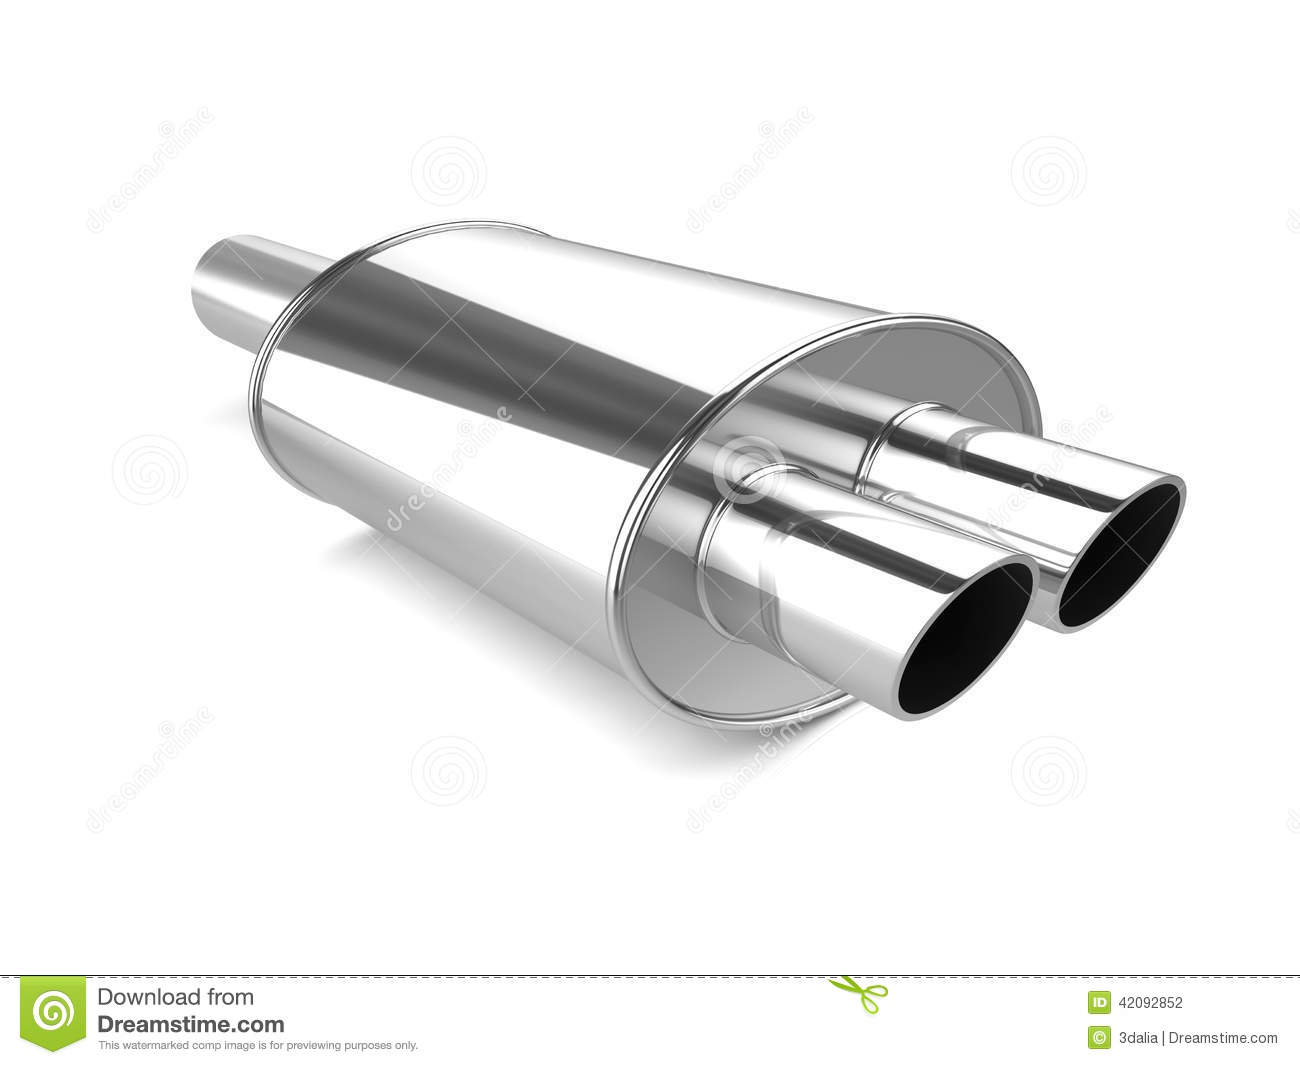 Exhaust stock illustrations 5607 exhaust stock illustrations 3d car exhaust pipes 3d render of chromed car exhaust pipes stock photography malvernweather